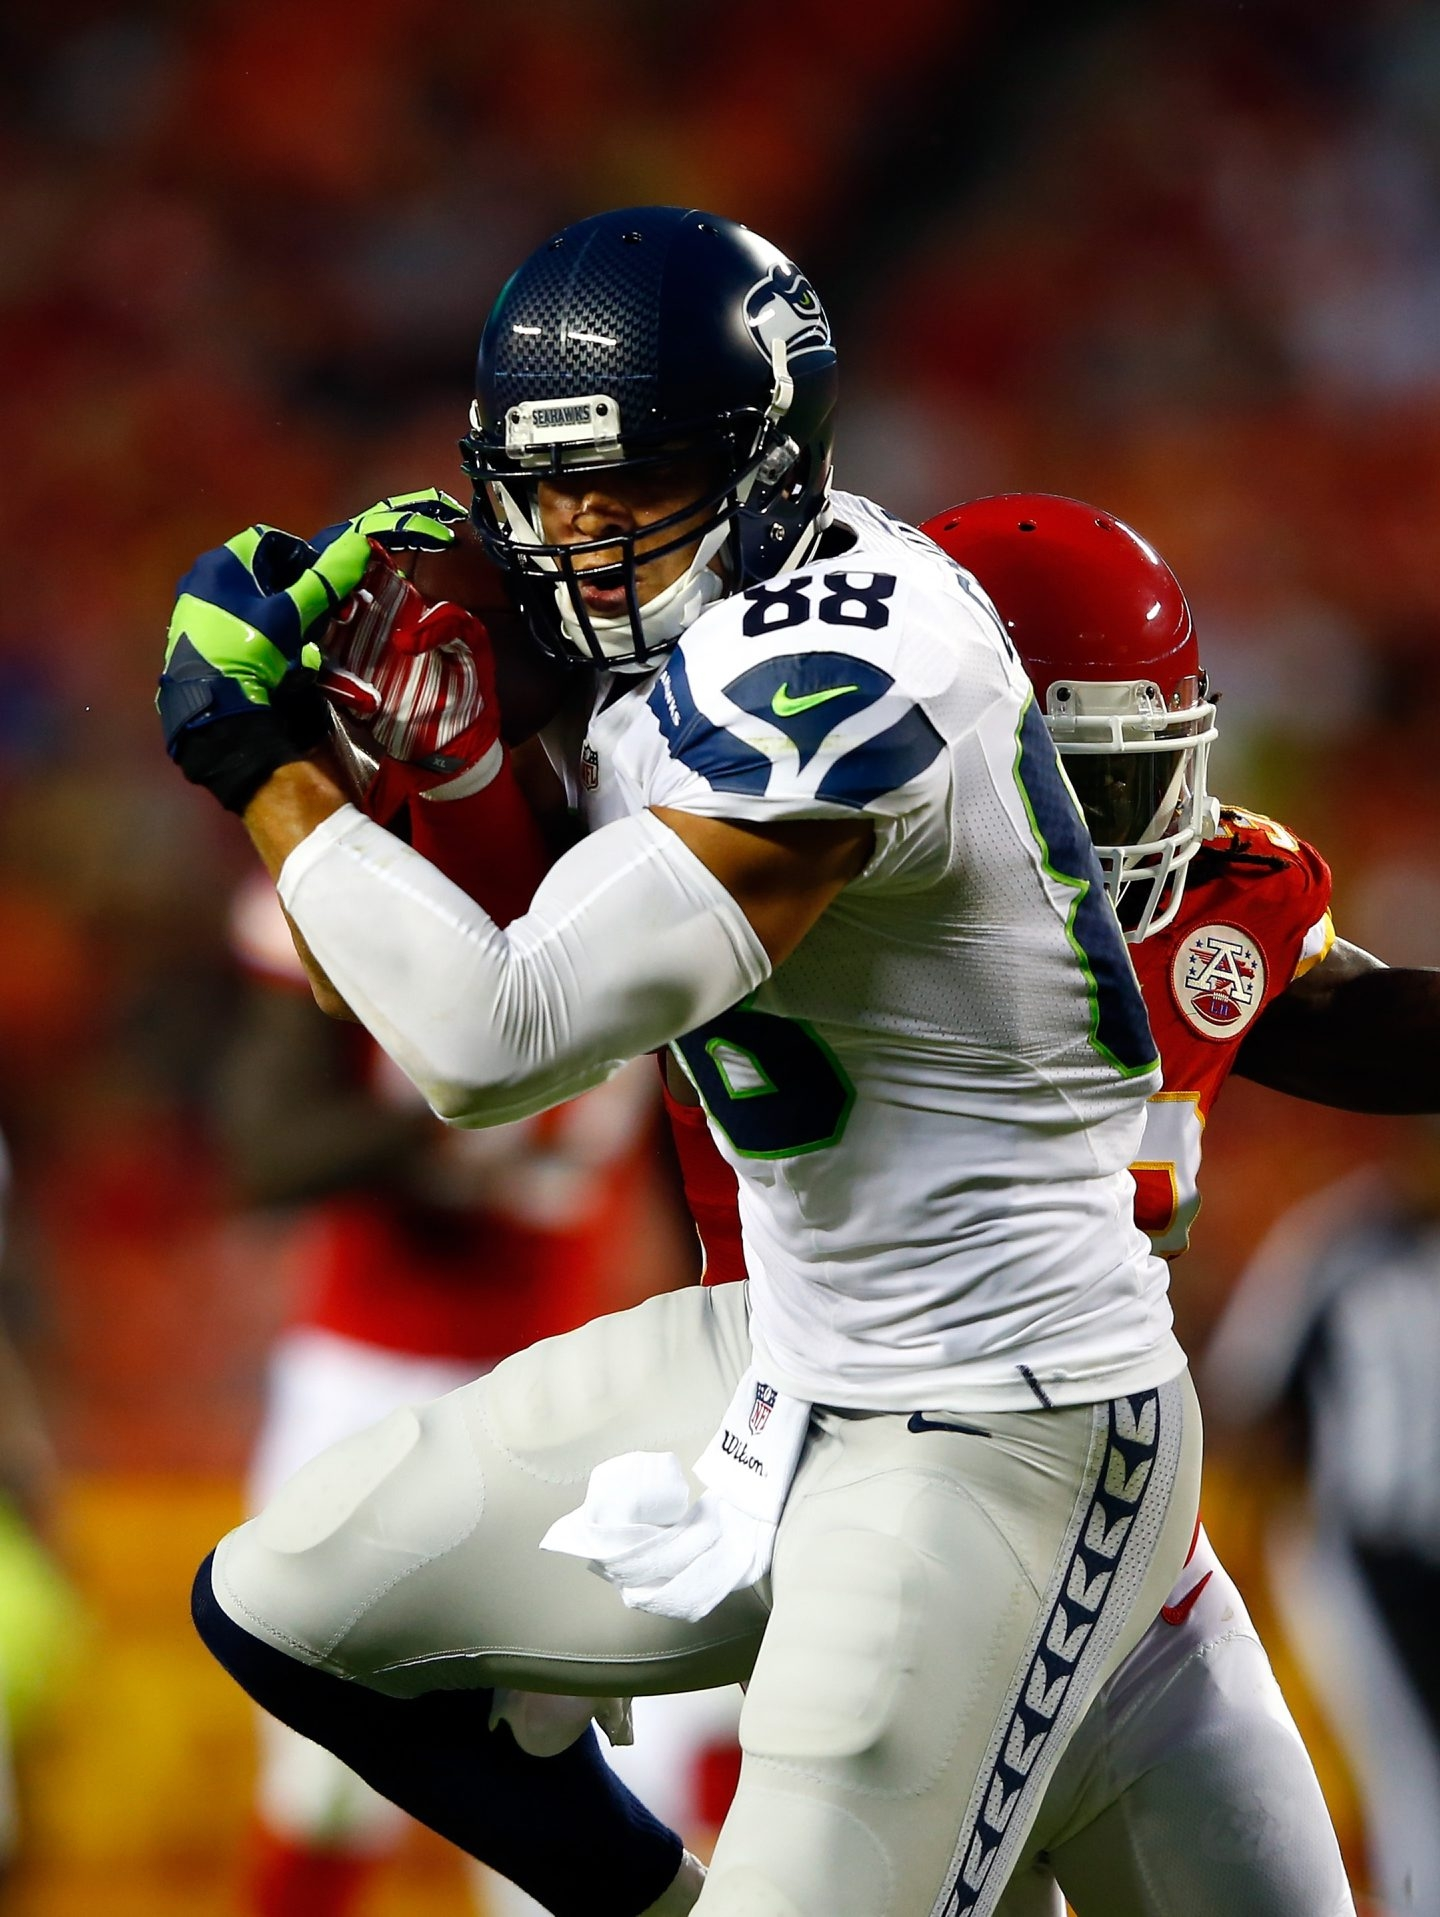 Seattle's trade for tight end Jimmy Graham gives the rest of the NFL another reason to fear the Seahawks.